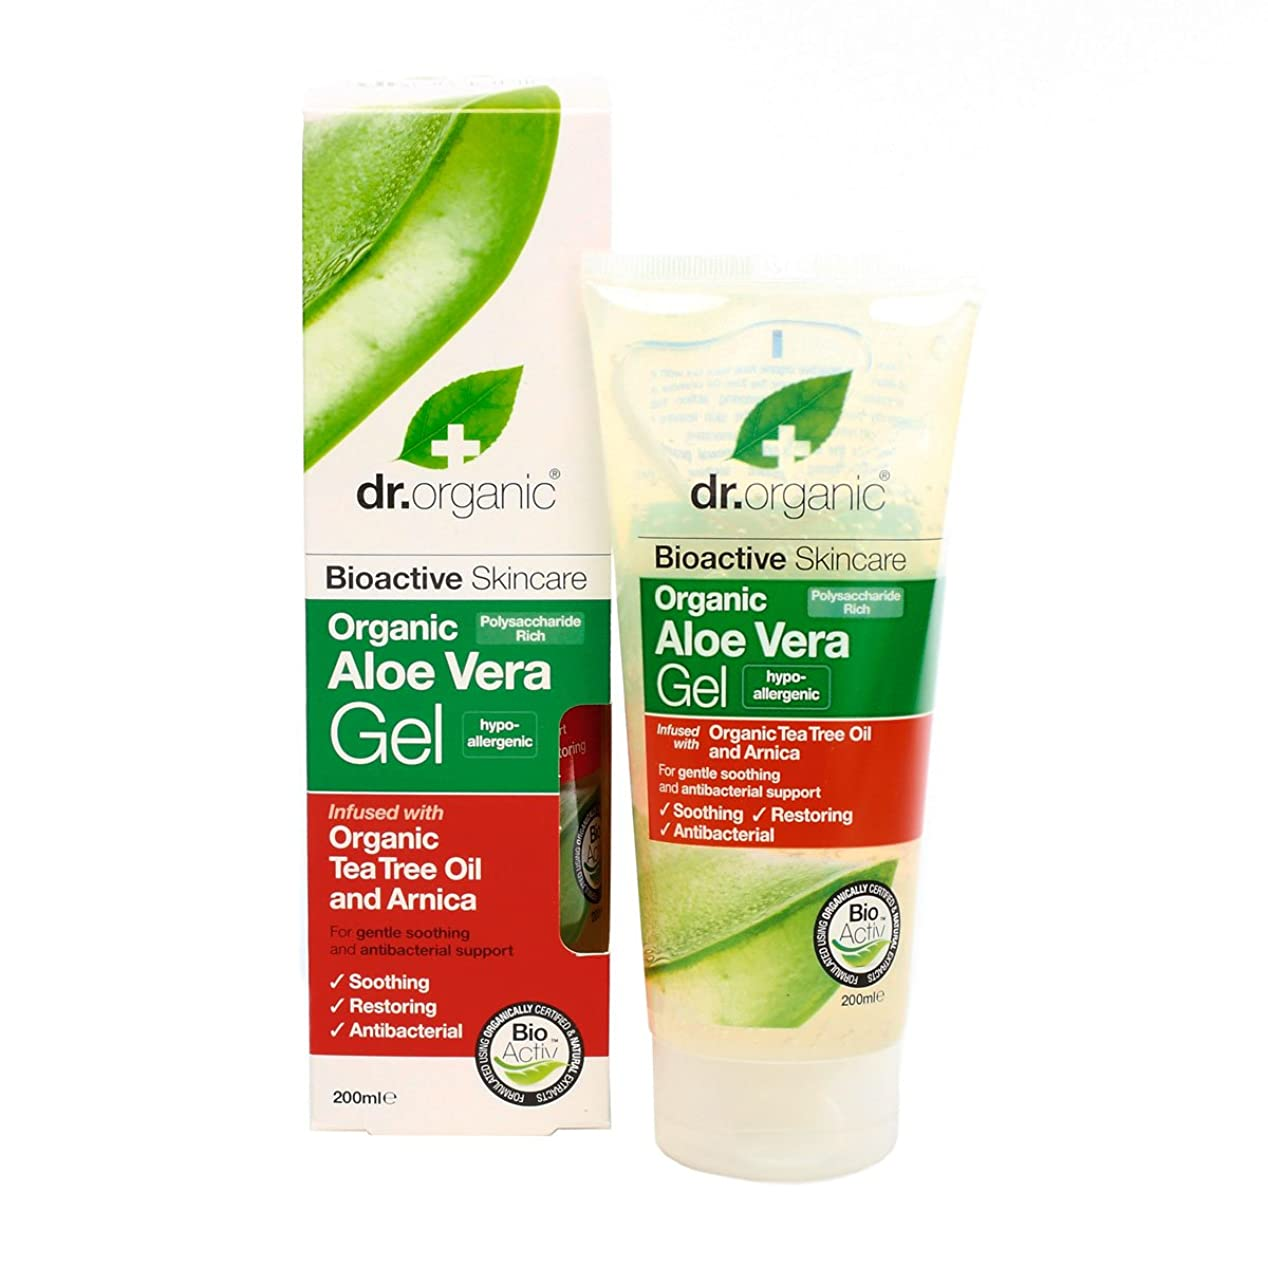 側ひねくれた土地Dr.organic Organic Aloe Vera Gel With Organic Tea Tree Oil And Arnica 200ml [並行輸入品]